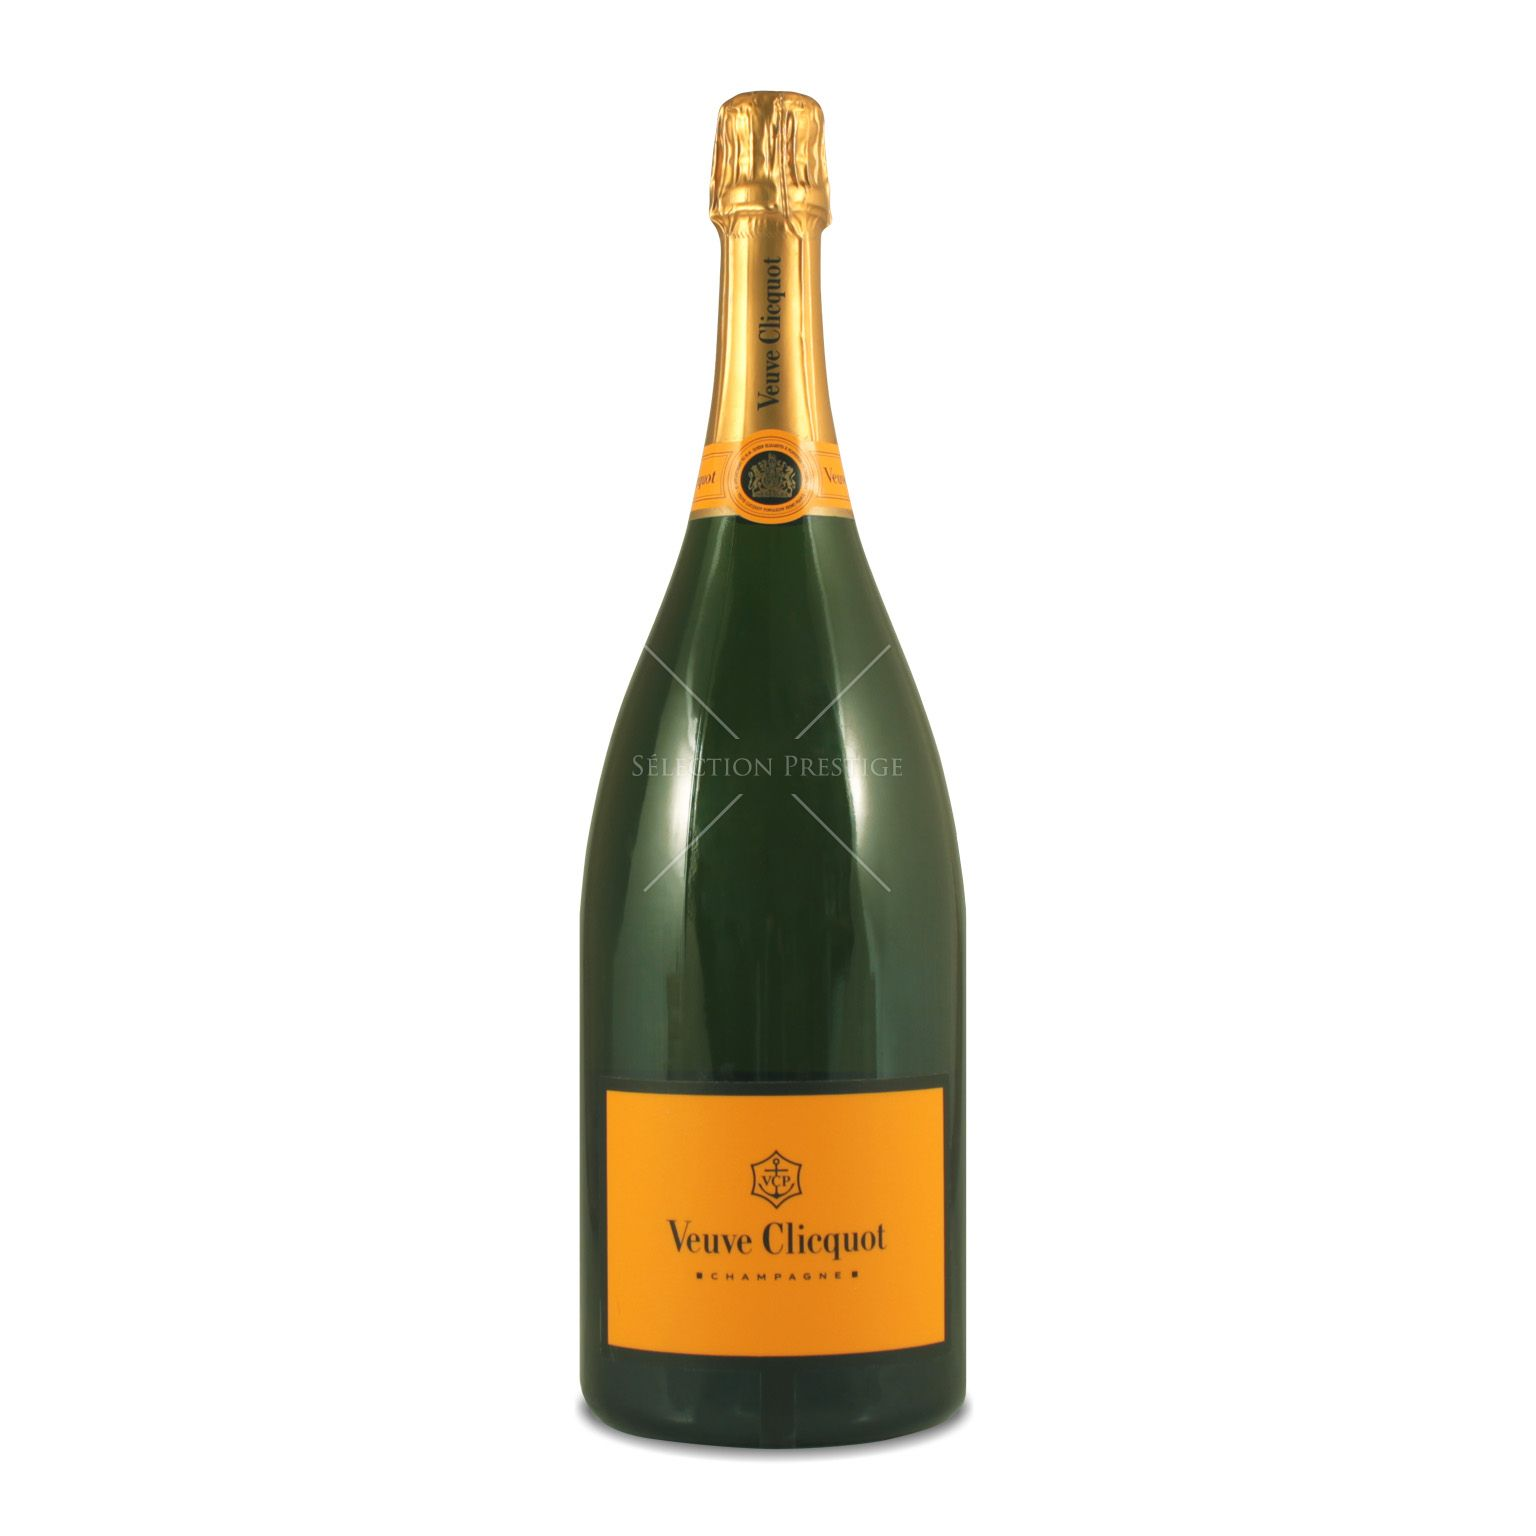 Veuve Clicquot Brut Veuve Clicquot Brut Luminous Magnum 1 5l 12 Vol